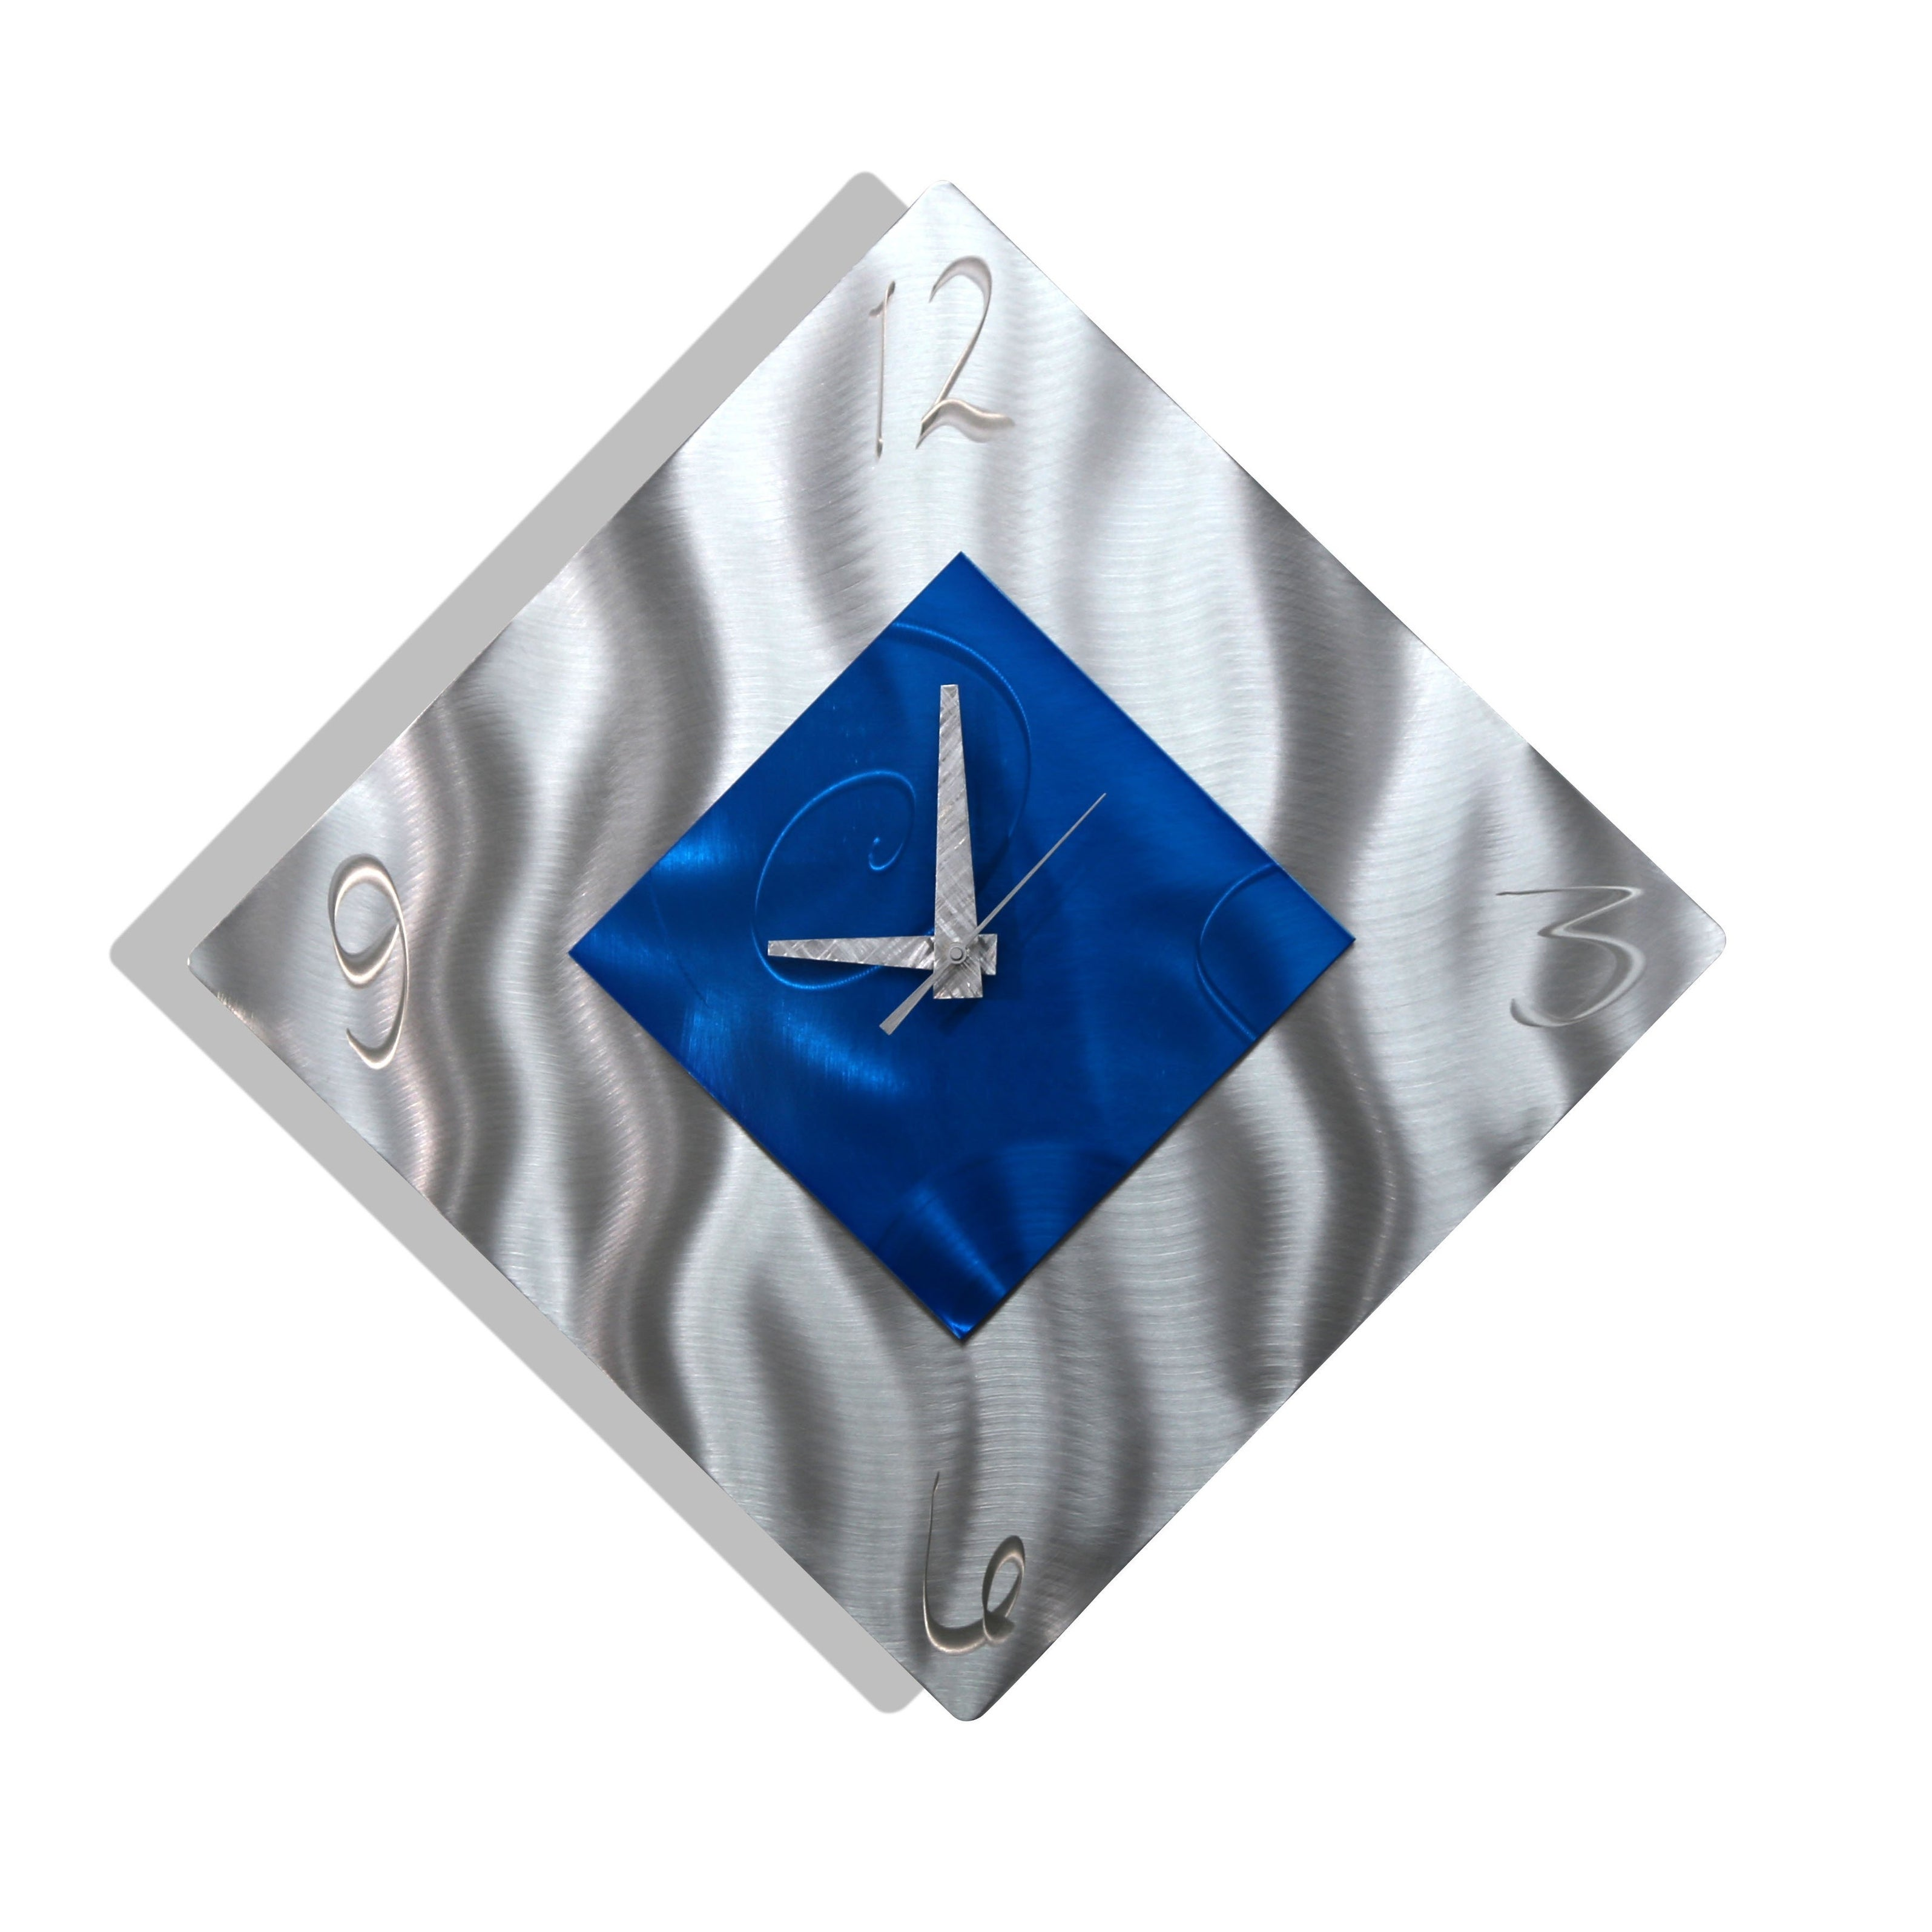 Statements2000 Blue / Silver Metal Wall Clock by Jon Allen - Spare Moment - Thumbnail 0